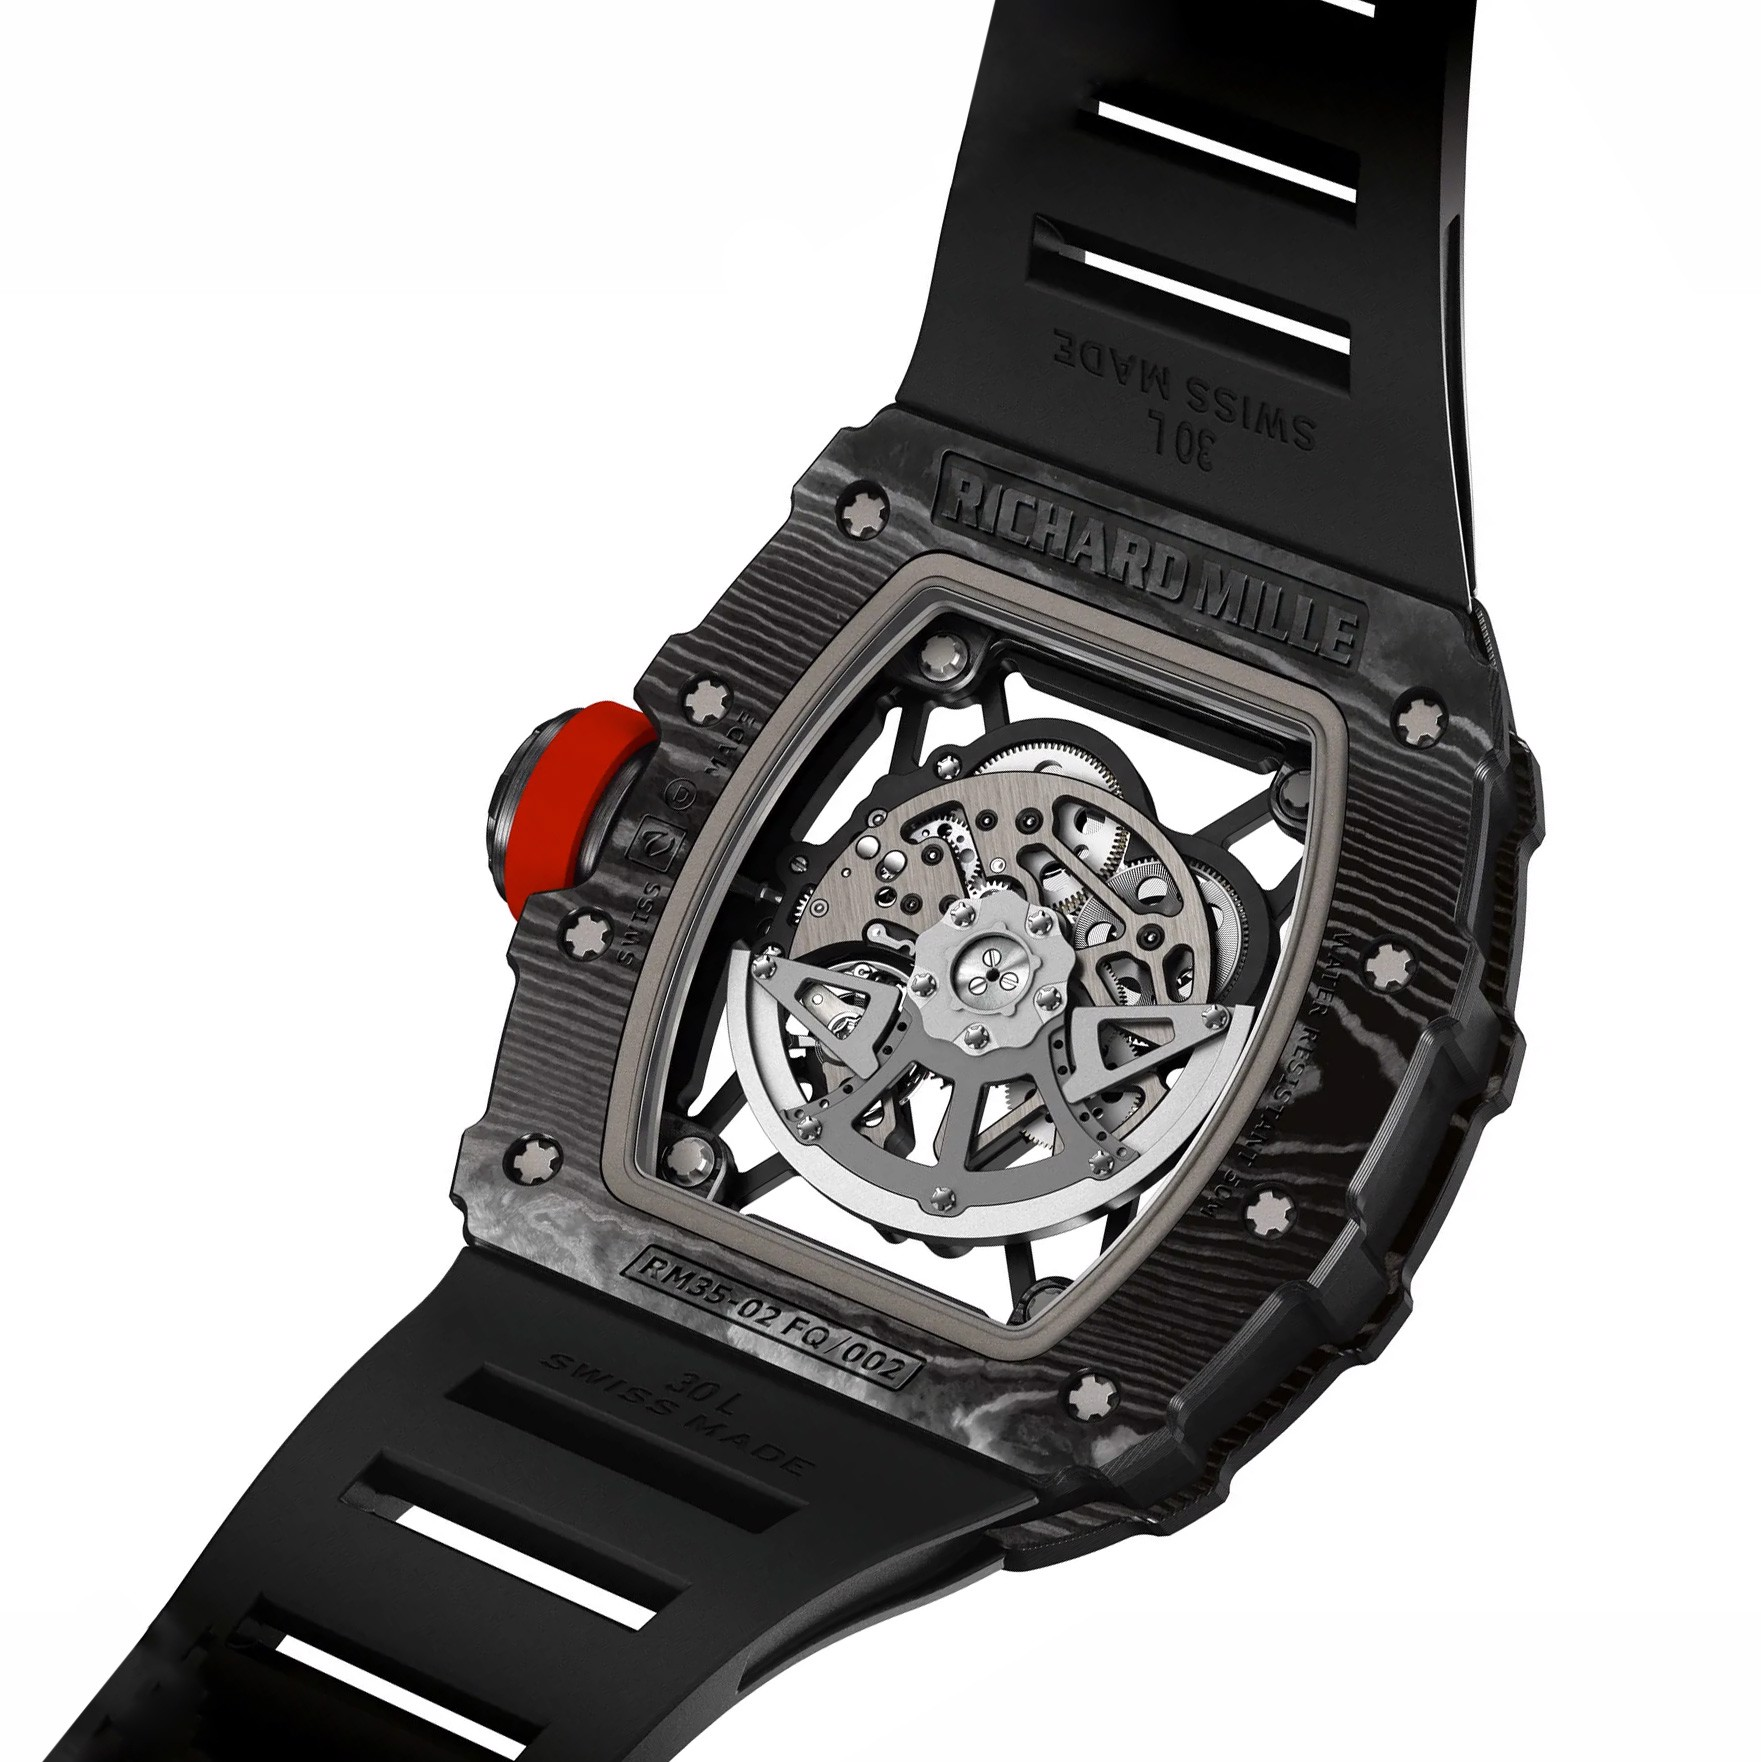 Richard Mille RM 35-02 Automatic Winding Rafael Nadal